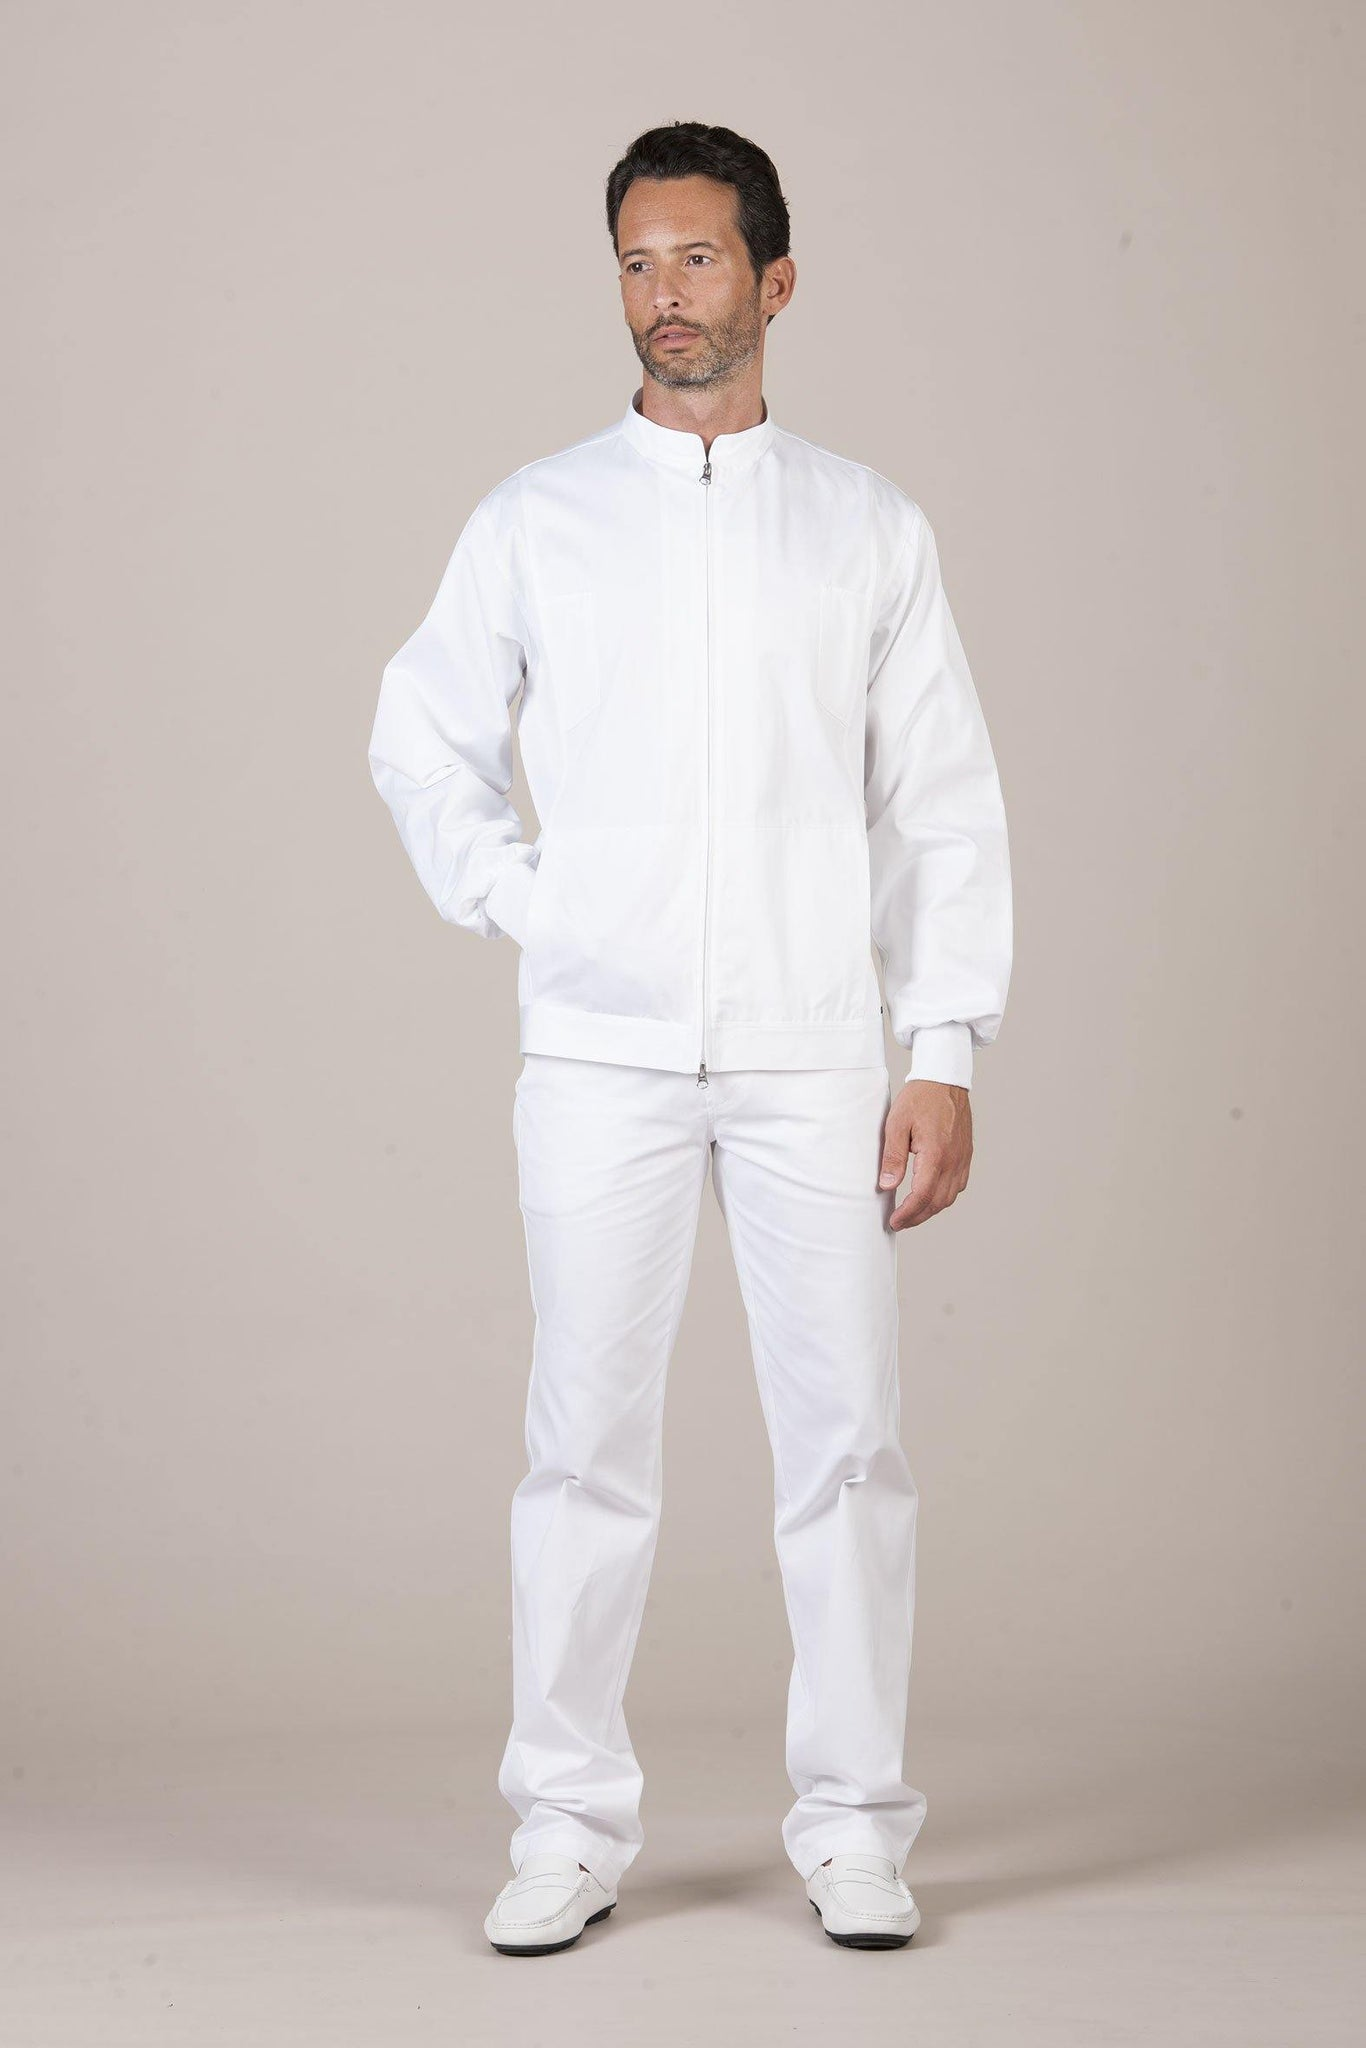 Austin Men's Lab Jacket